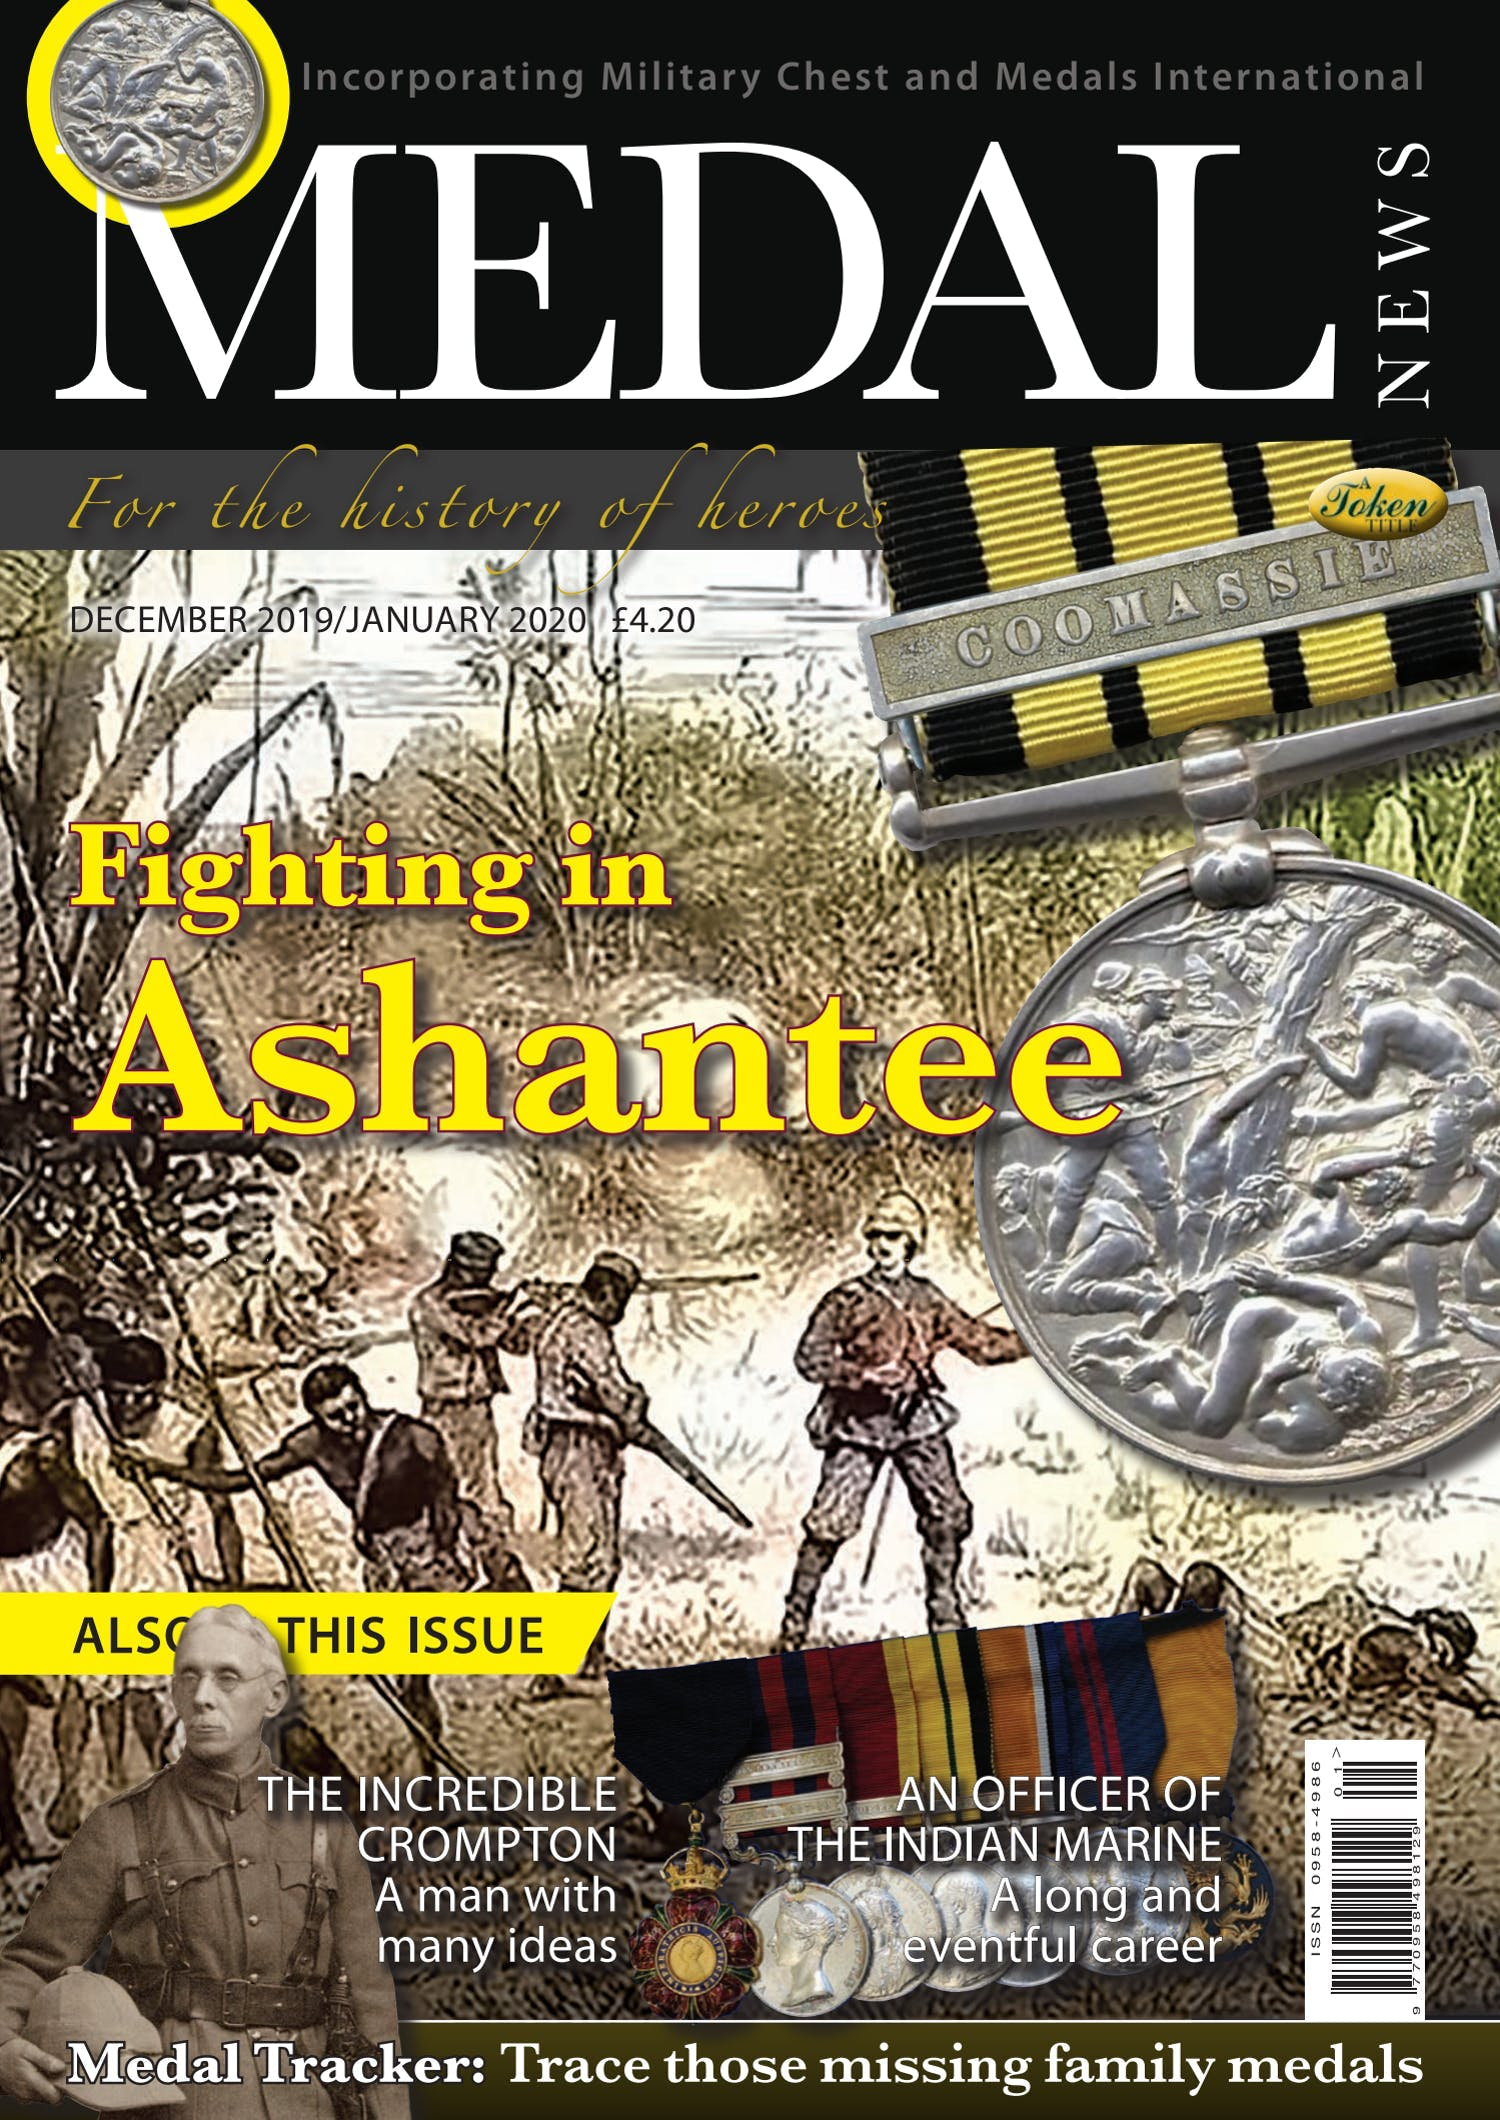 Front cover of 'Fighting in Ashantee', Medal News January 2020, Volume 58, Number 1 by Token Publishing